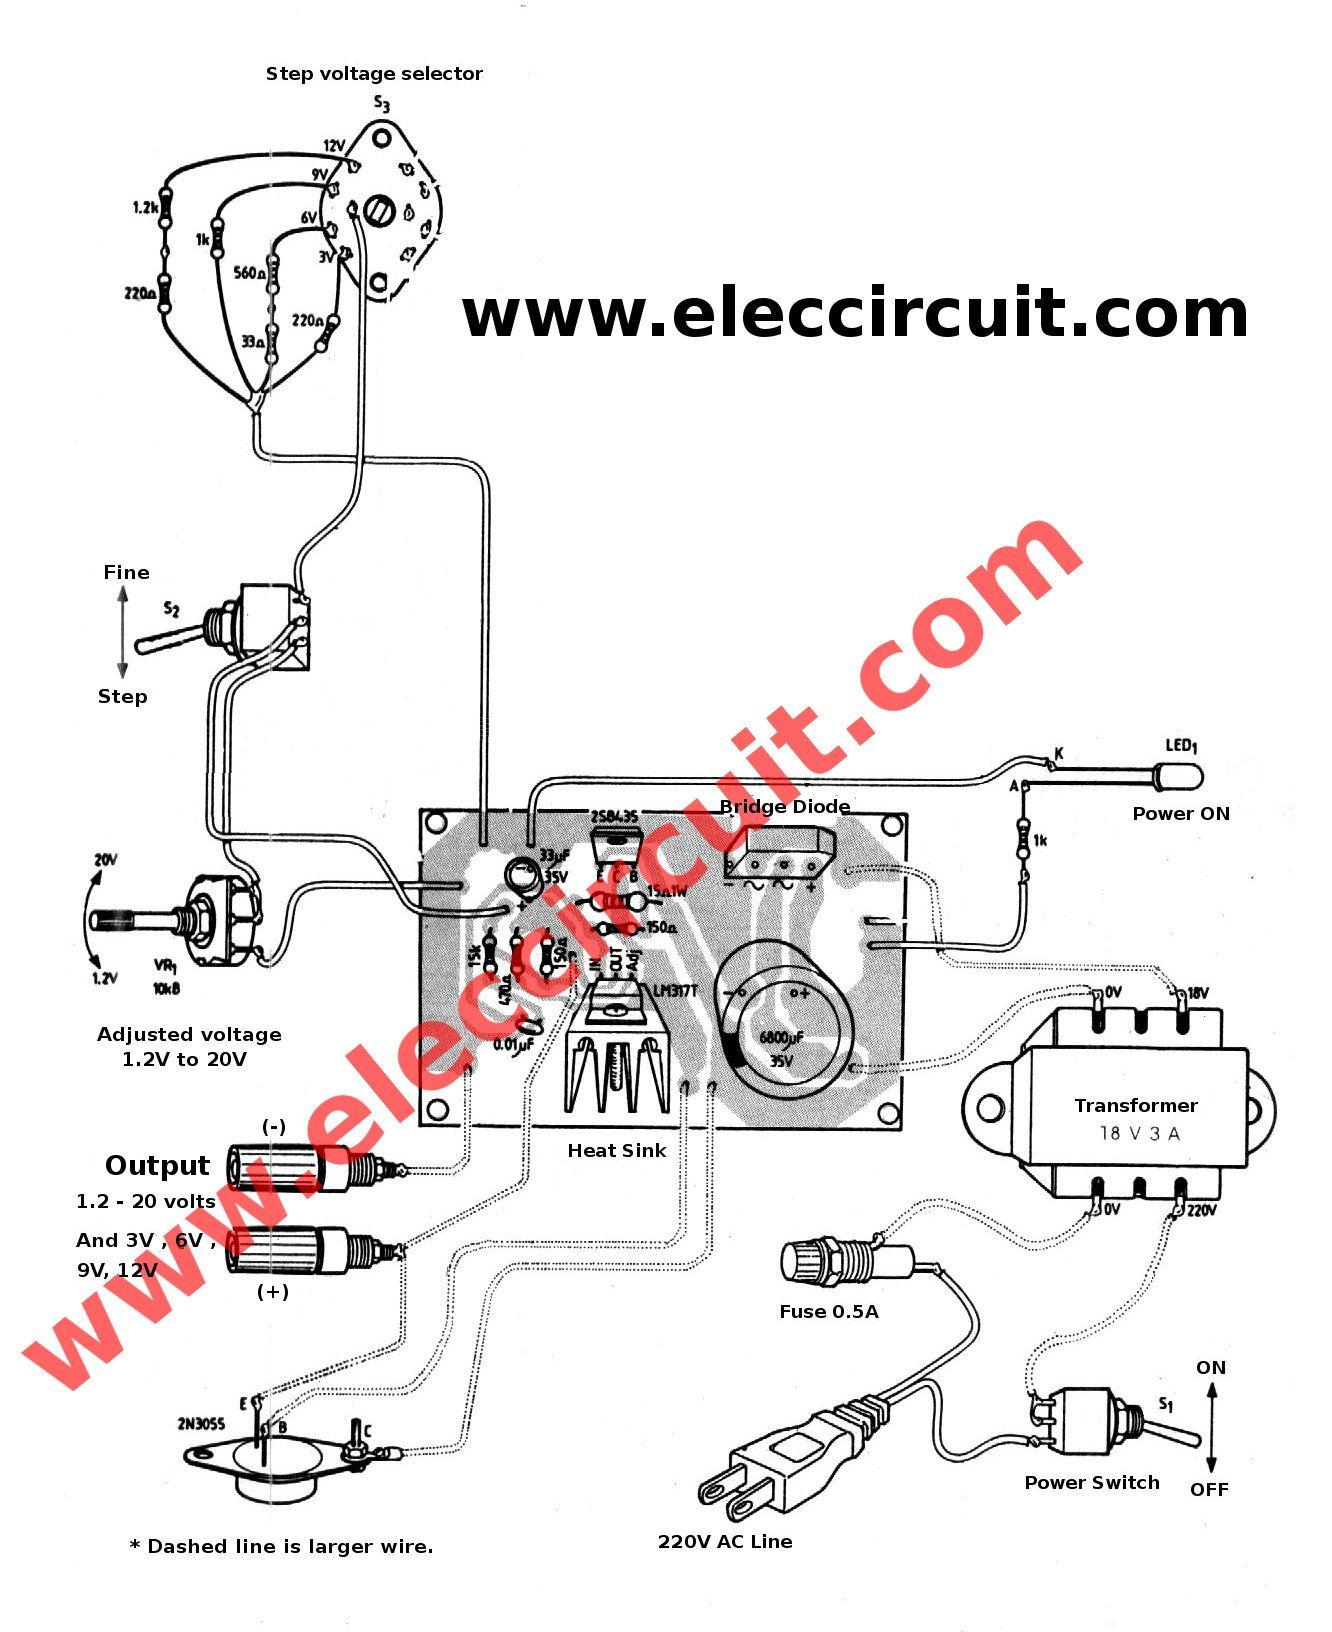 medium resolution of we recommend the lm317 adjustable voltage regulator circuit it use normally component lm317 popular dc voltage regulator and 2n3055 transistor to boost up